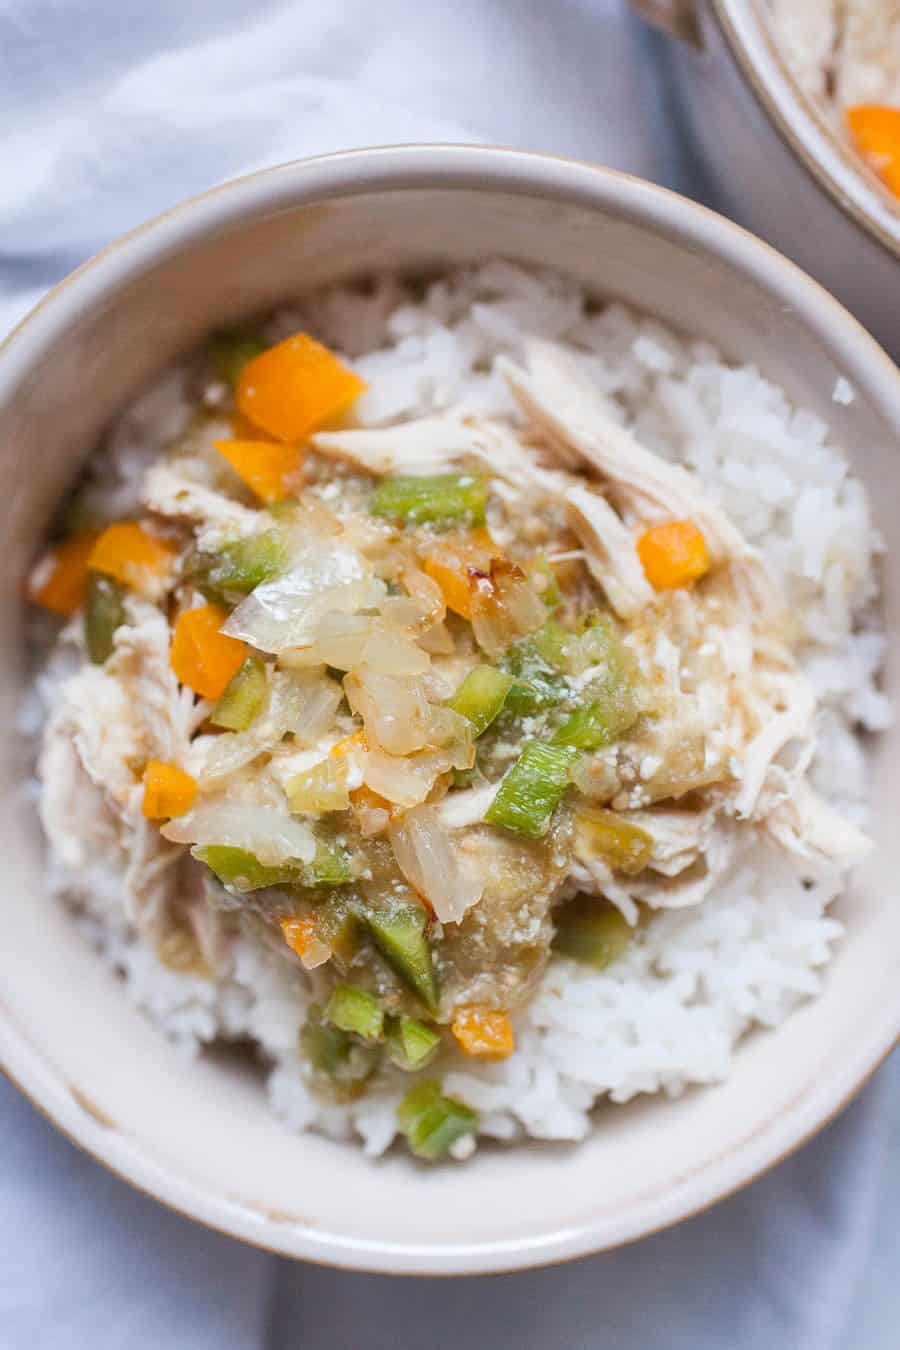 This five ingredient Salsa Verde Chicken is an easy weeknight slow cooker meal the whole family will love! It's made with jarred salsa verde, chicken, bell peppers, onions and rice and it's ready in a matter without even thinking about it.